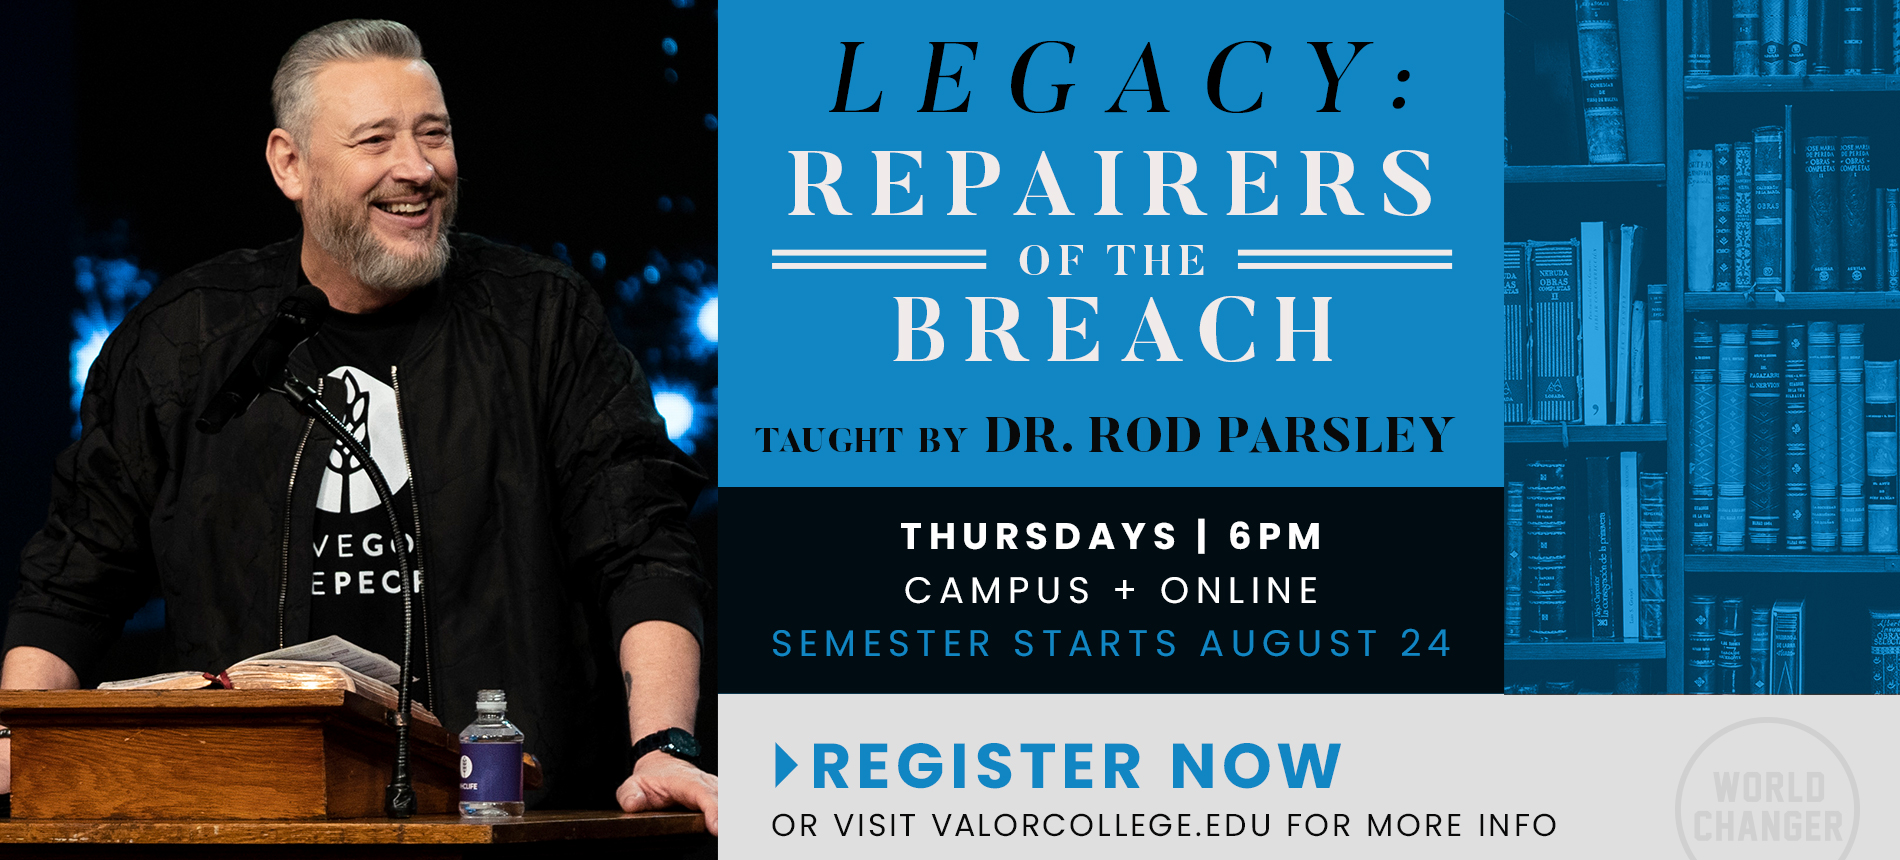 WHCE | Legacy: Repairers of the Breach